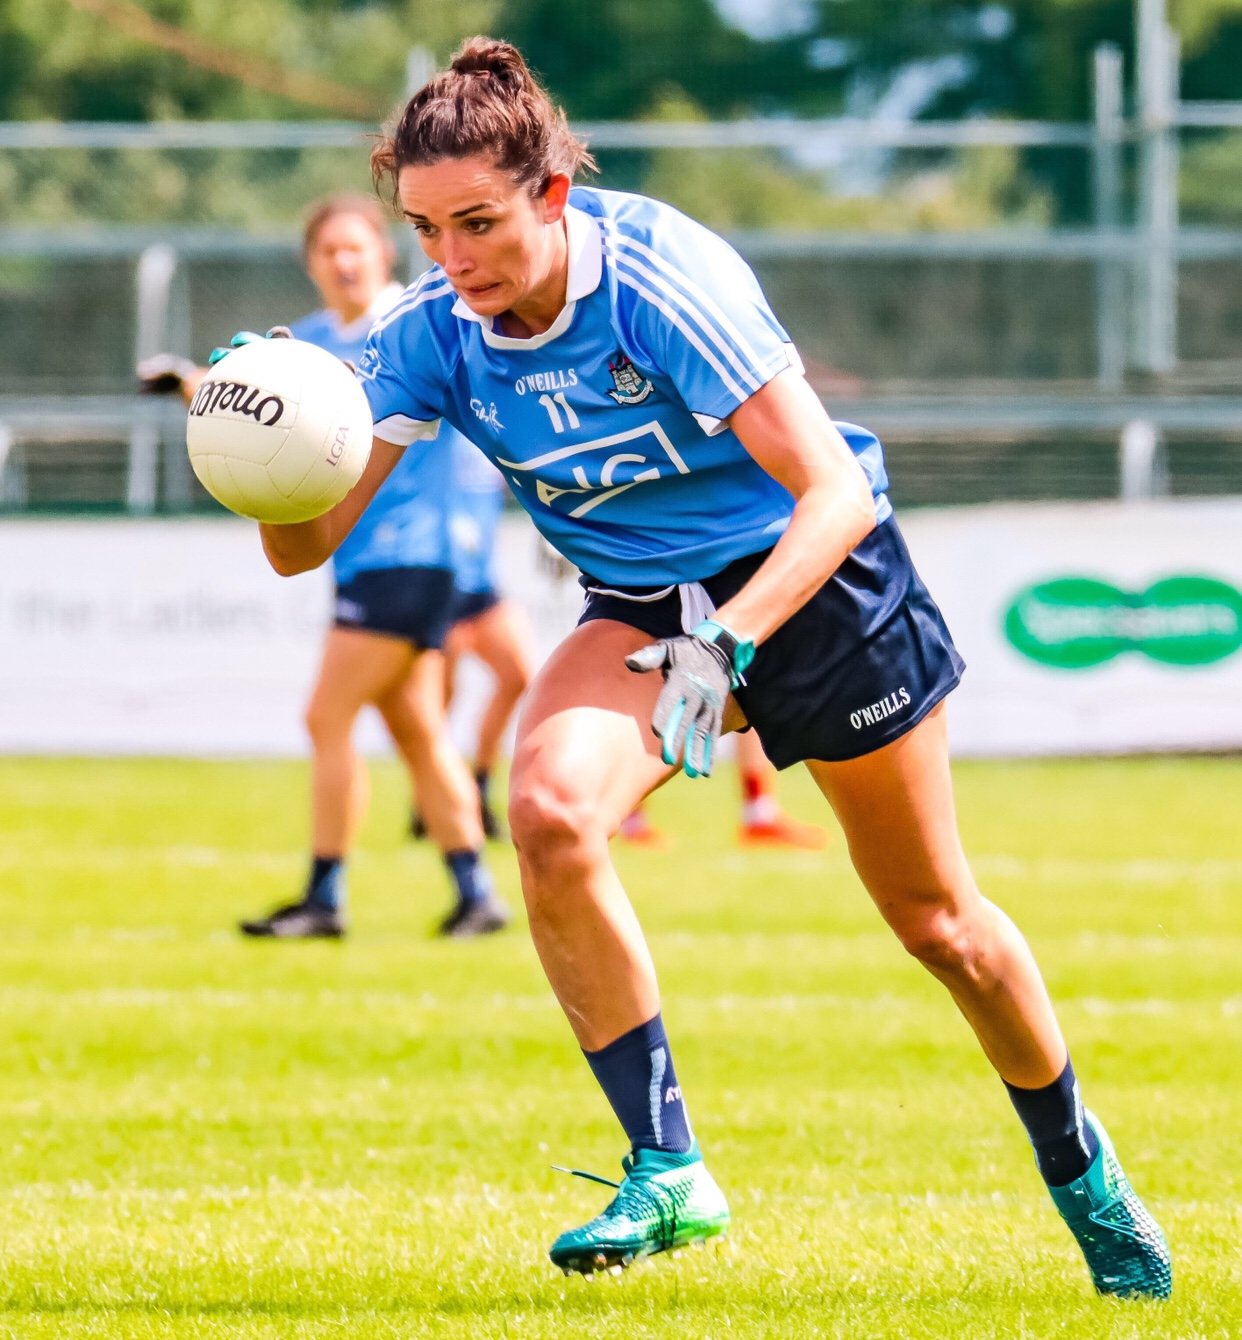 Dublin Ladies Footballer Niamh McEvoy i. A sky blue jersey and navy shorts says she would never swap a Dublin Jersey after a game